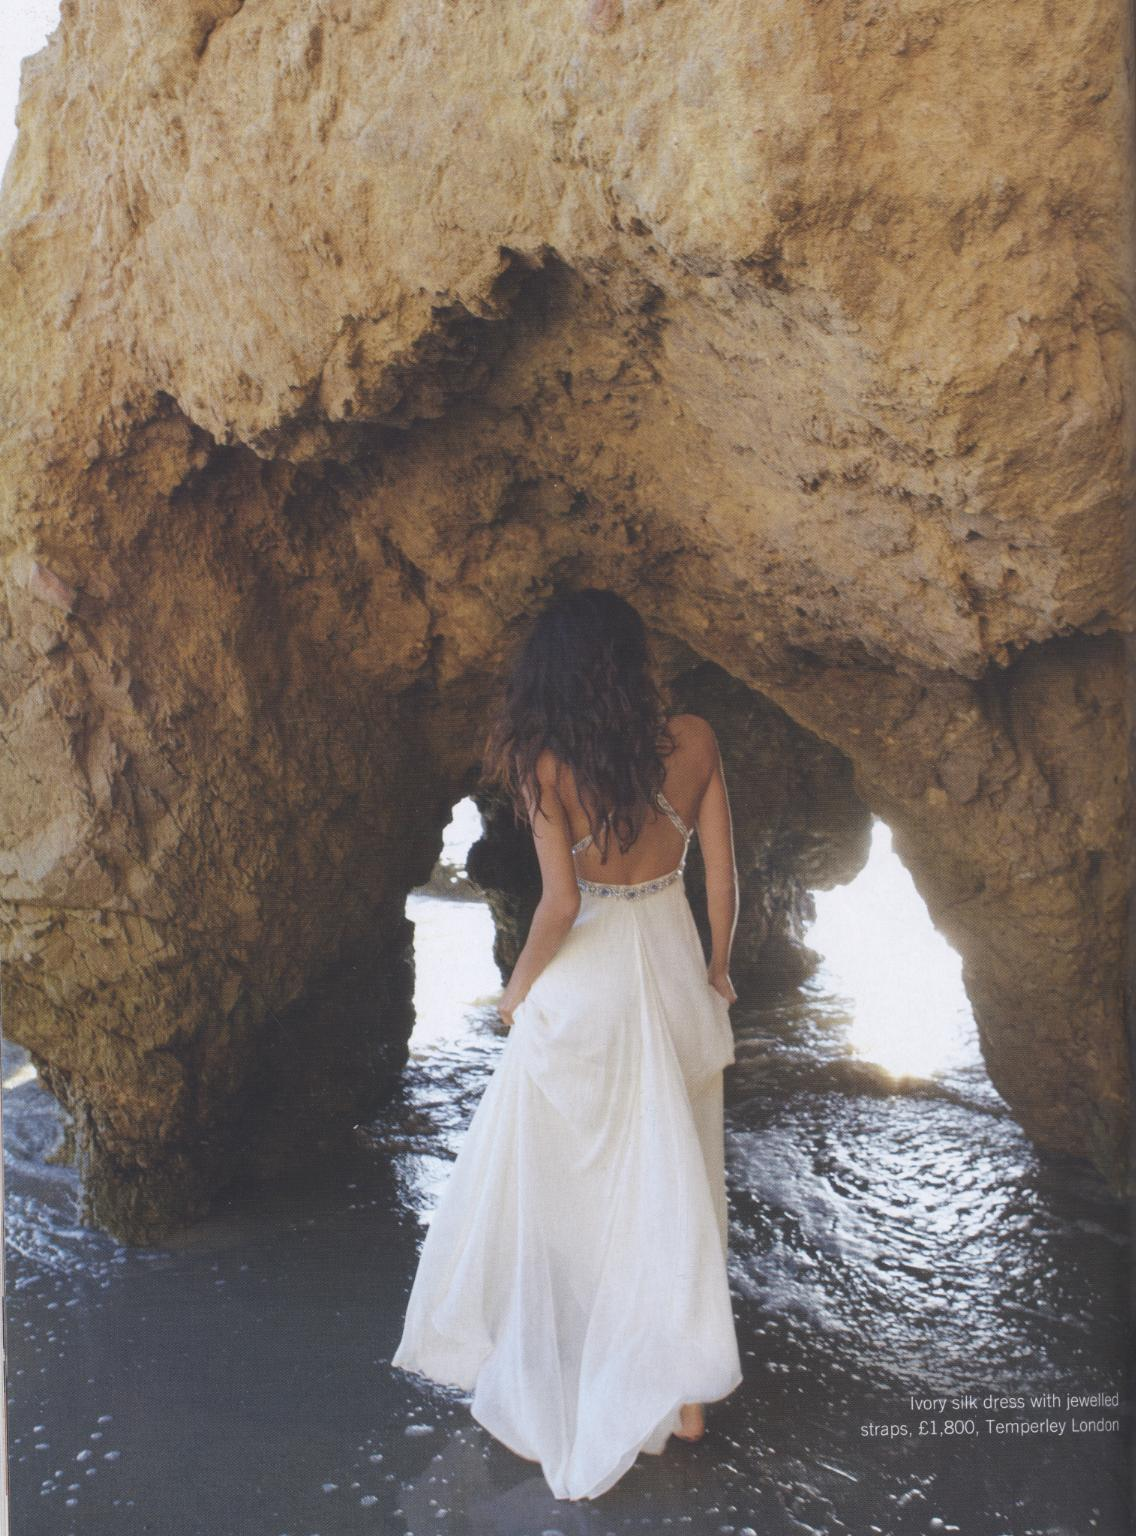 backless wedding dresses backless wedding dresses Silver Sequin backless dress by Clinton Lotter at Blackburn Bridal Couture Ivory